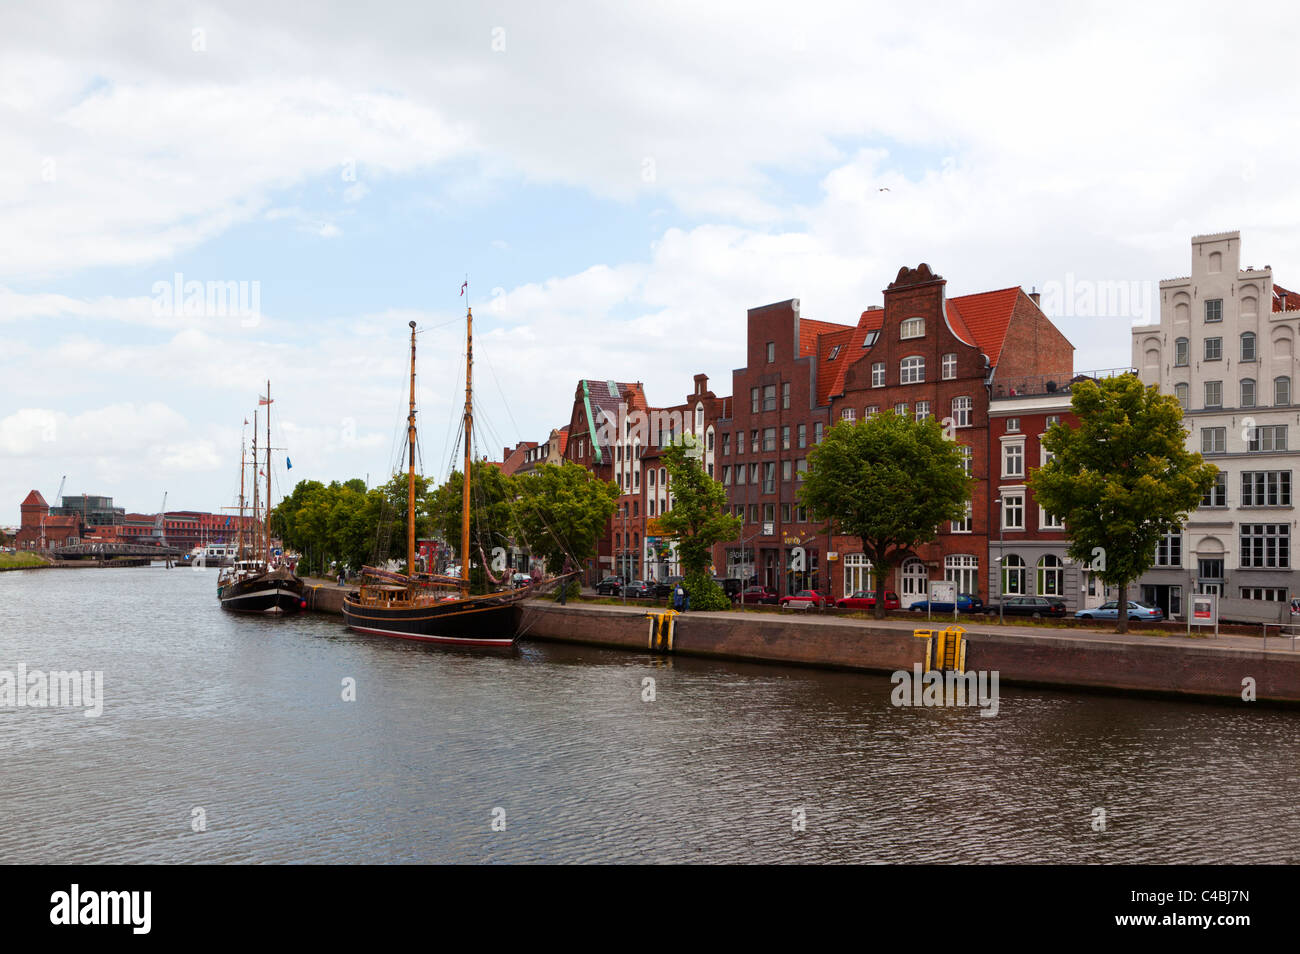 historic facades and museum ships at the Untertrave pier, Lubeck - Stock Image